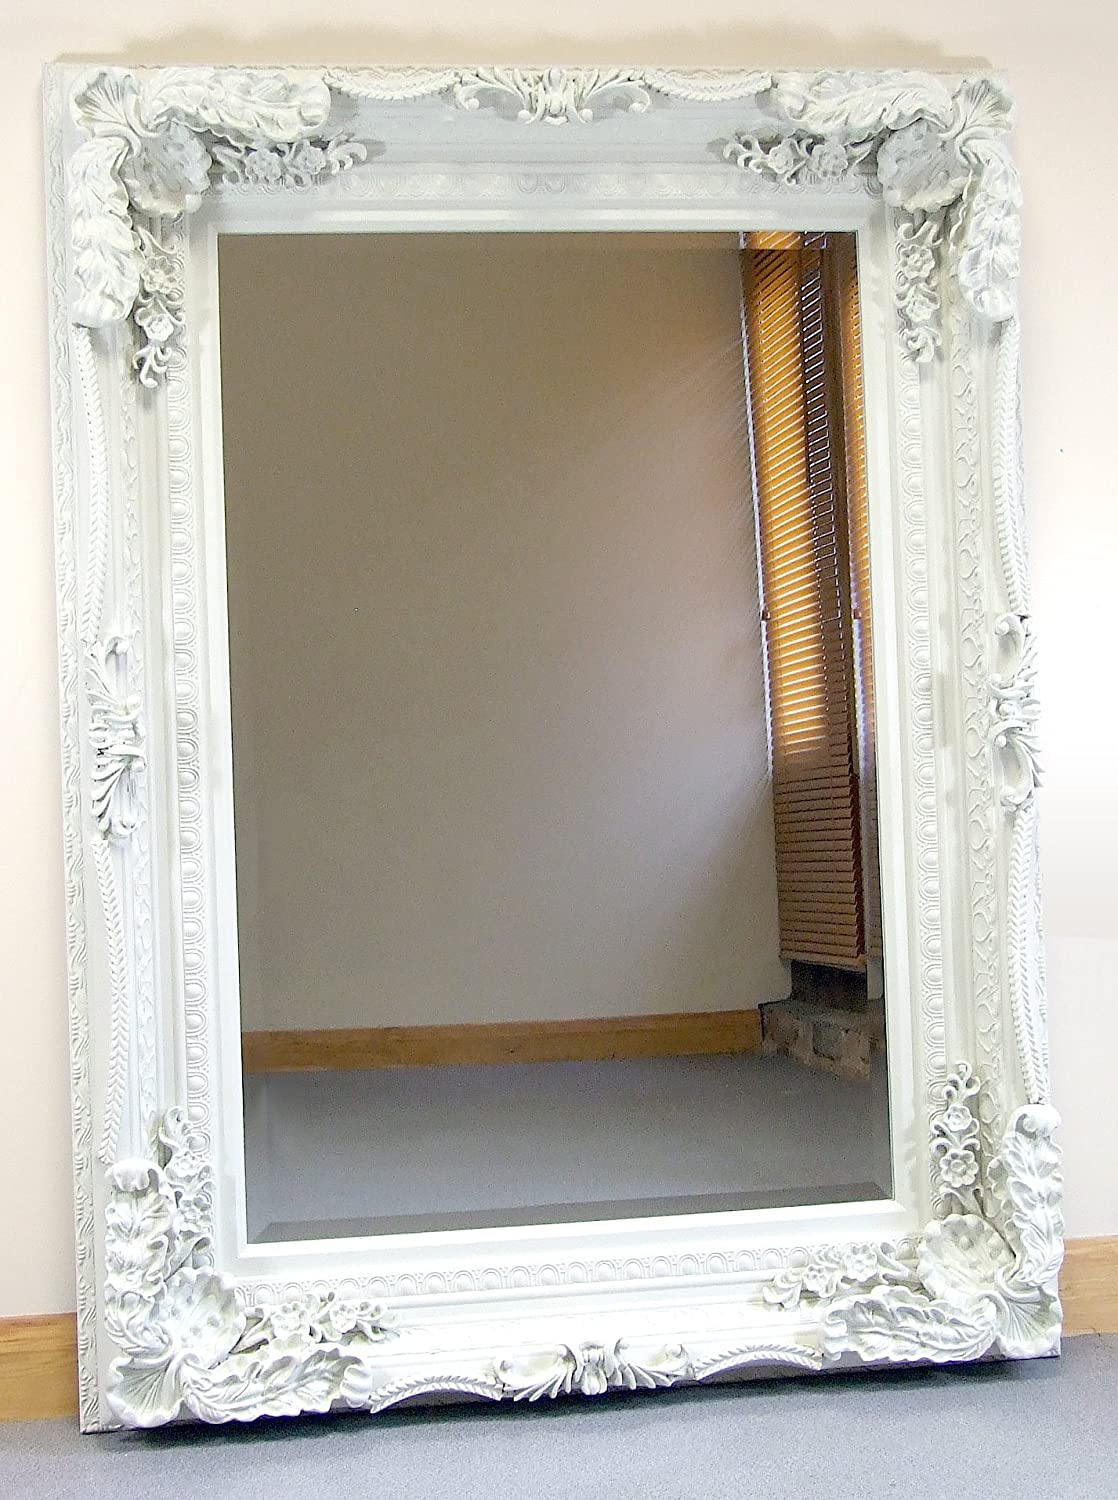 Barcelona Trading Carved Louis Cream Ornate French Frame Wall/Over Mantle Mirror - 35in x 47in Mirroroutlet